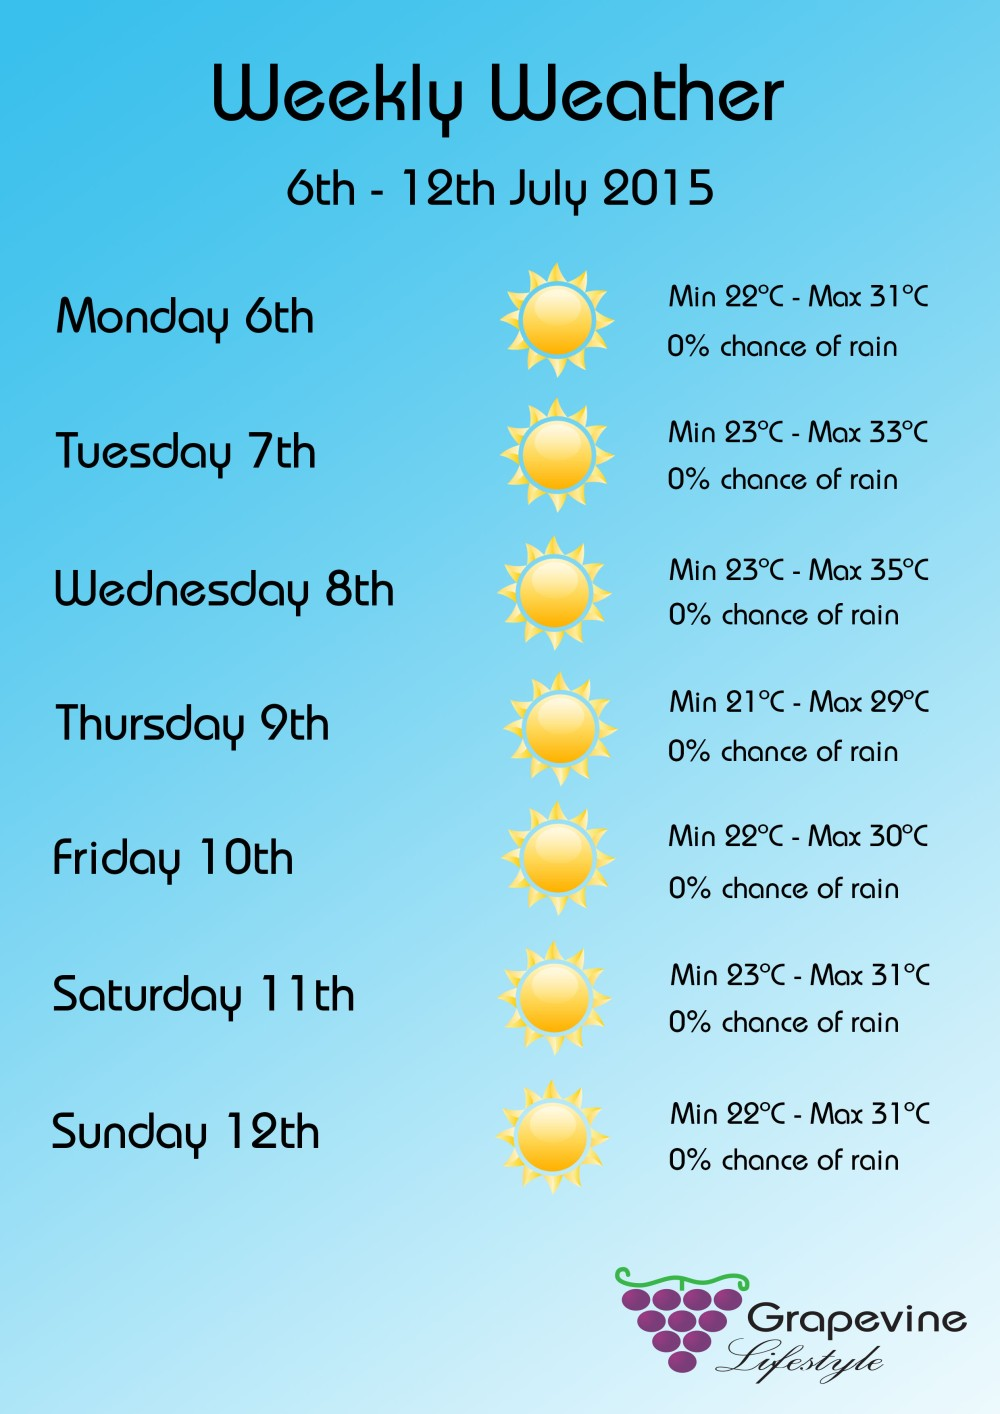 Weekly weather 6-12 July